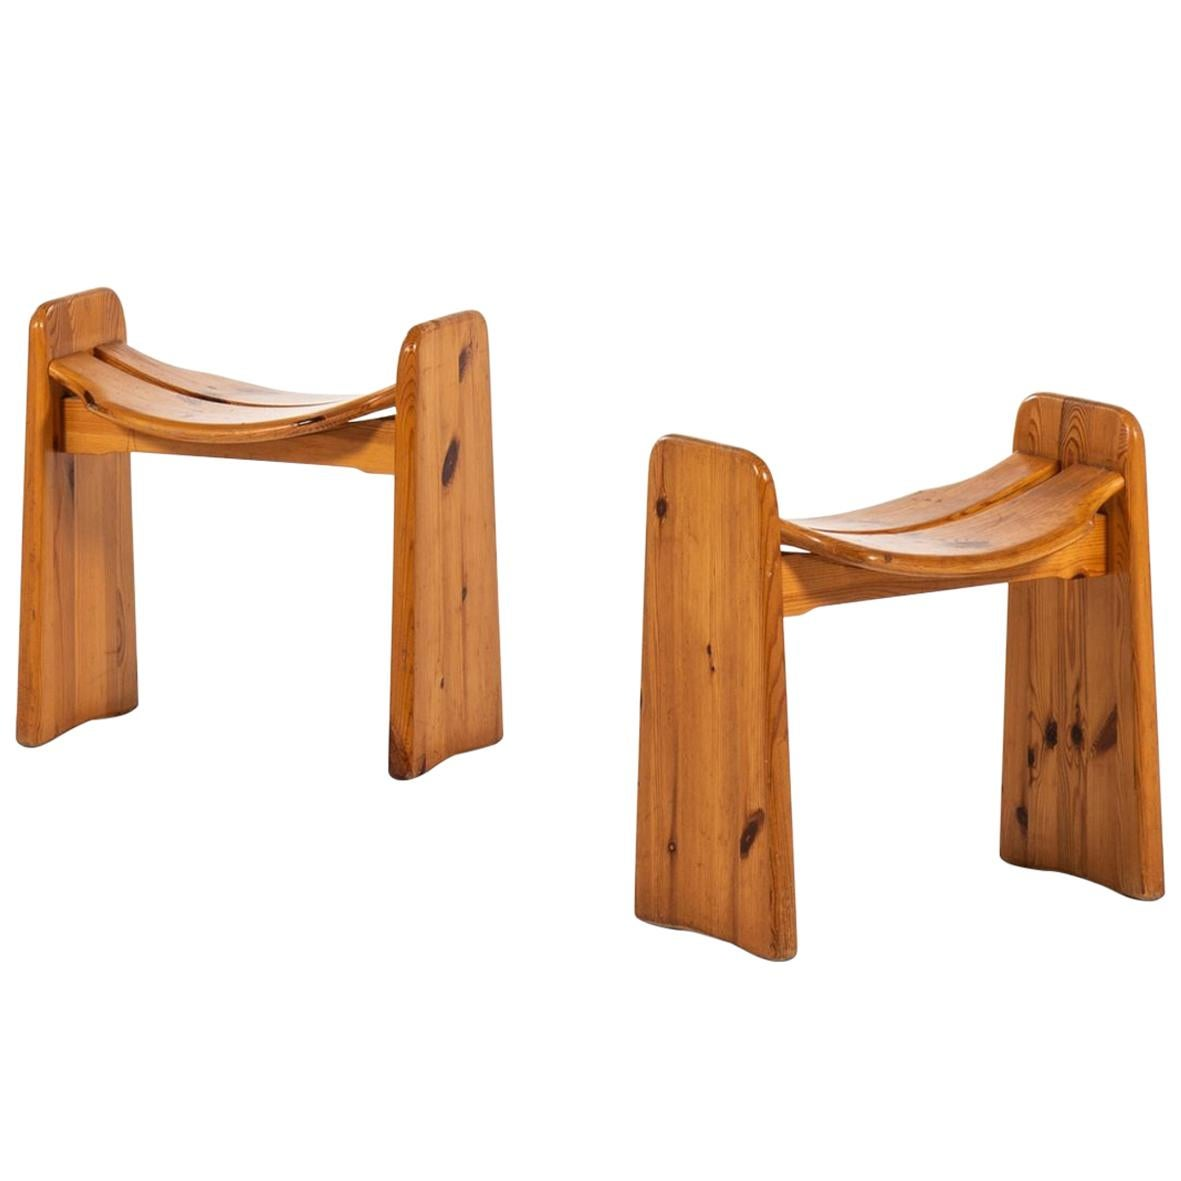 Gilbert Marklund Stools Produced by Furusnickarn AB in Sweden